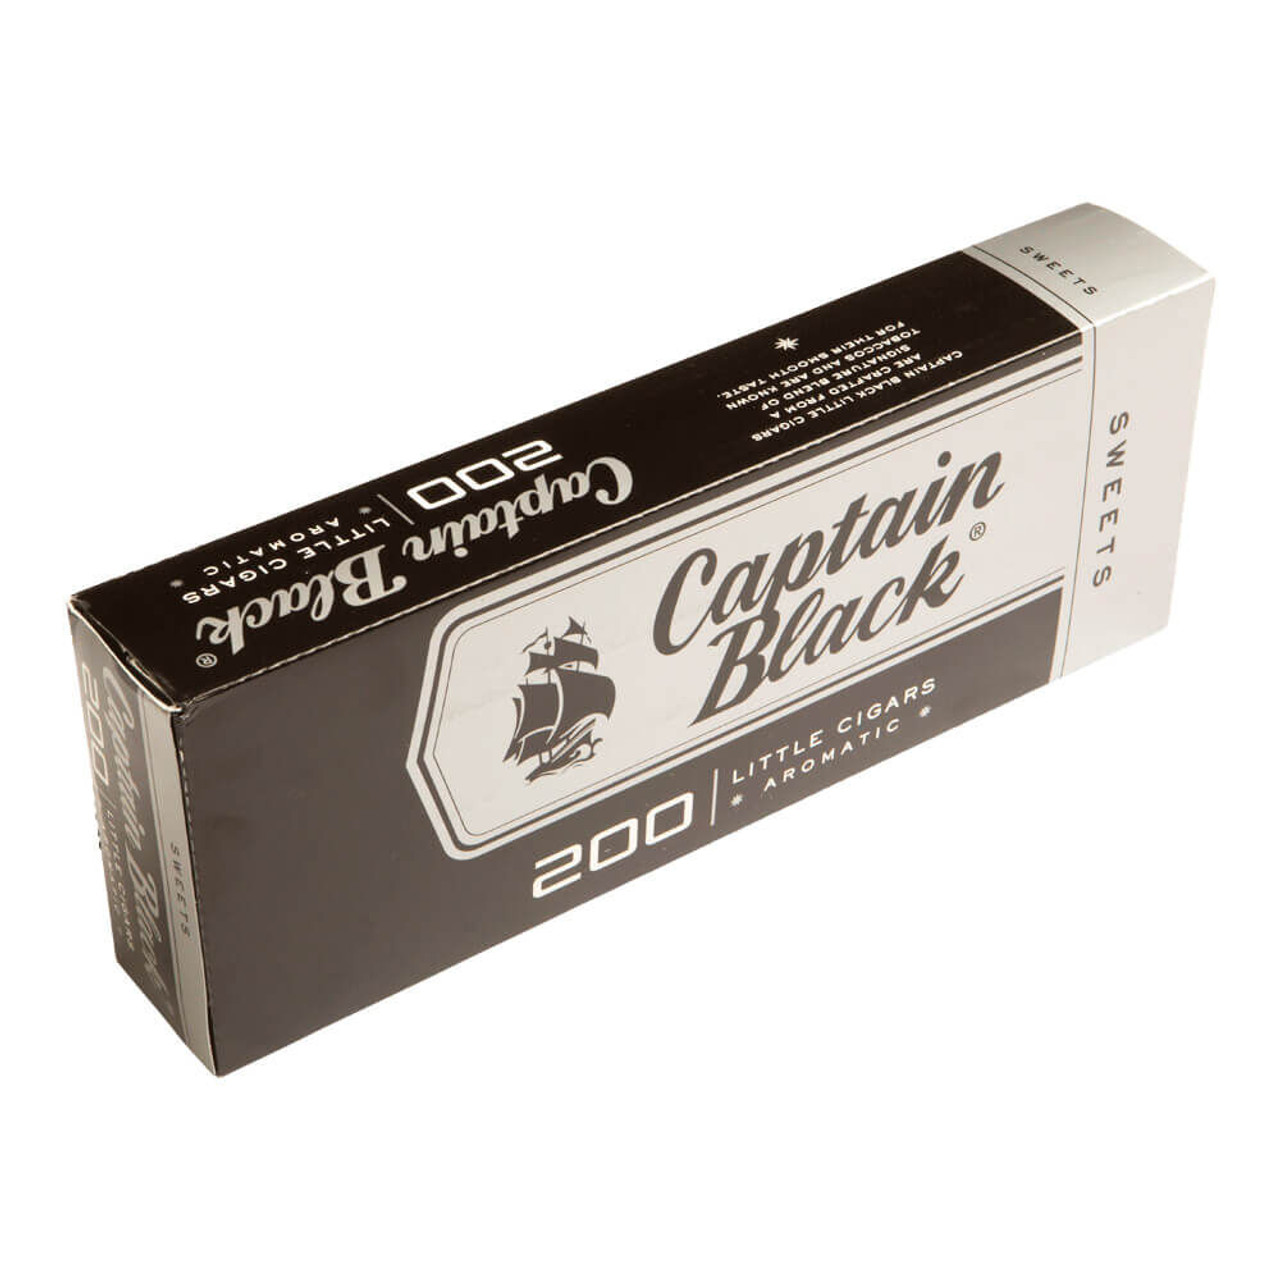 Captain Black Little Cigars Sweets Cigars - 3.75 x 20 (10 Packs of 20 (200 total))